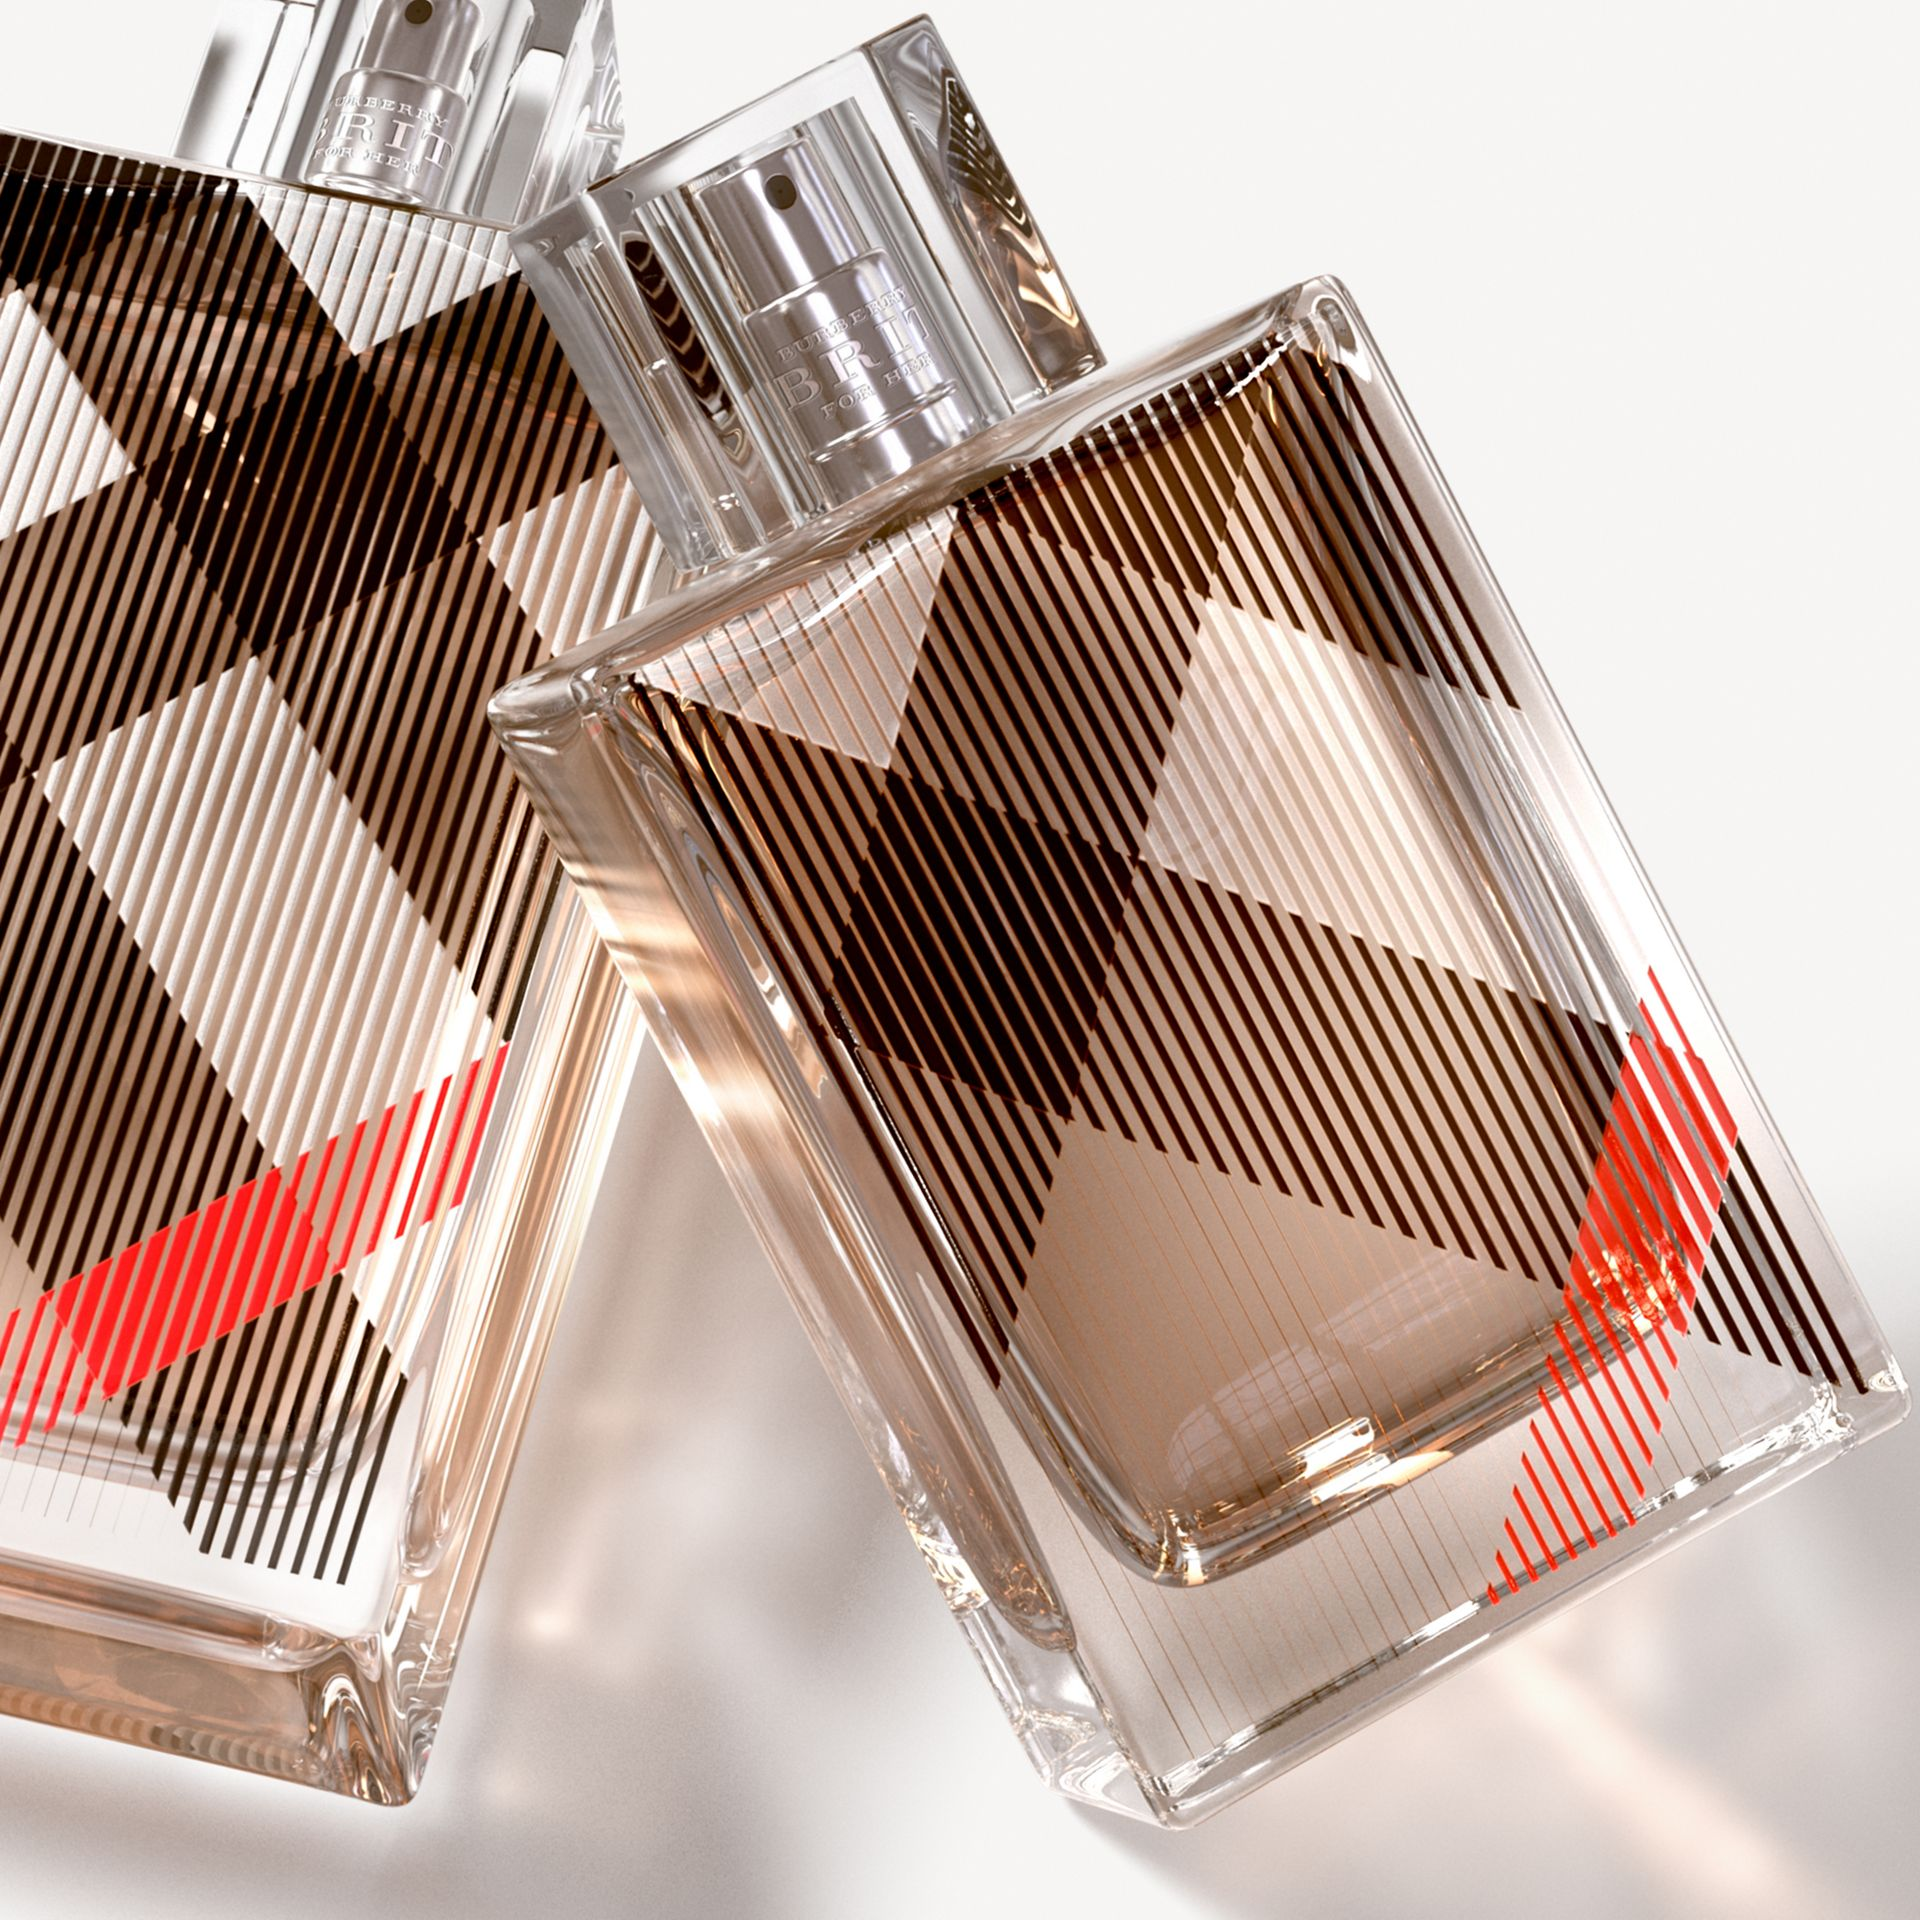 Burberry Brit For Her Eau De Parfum 50 ml - Galerie-Bild 2